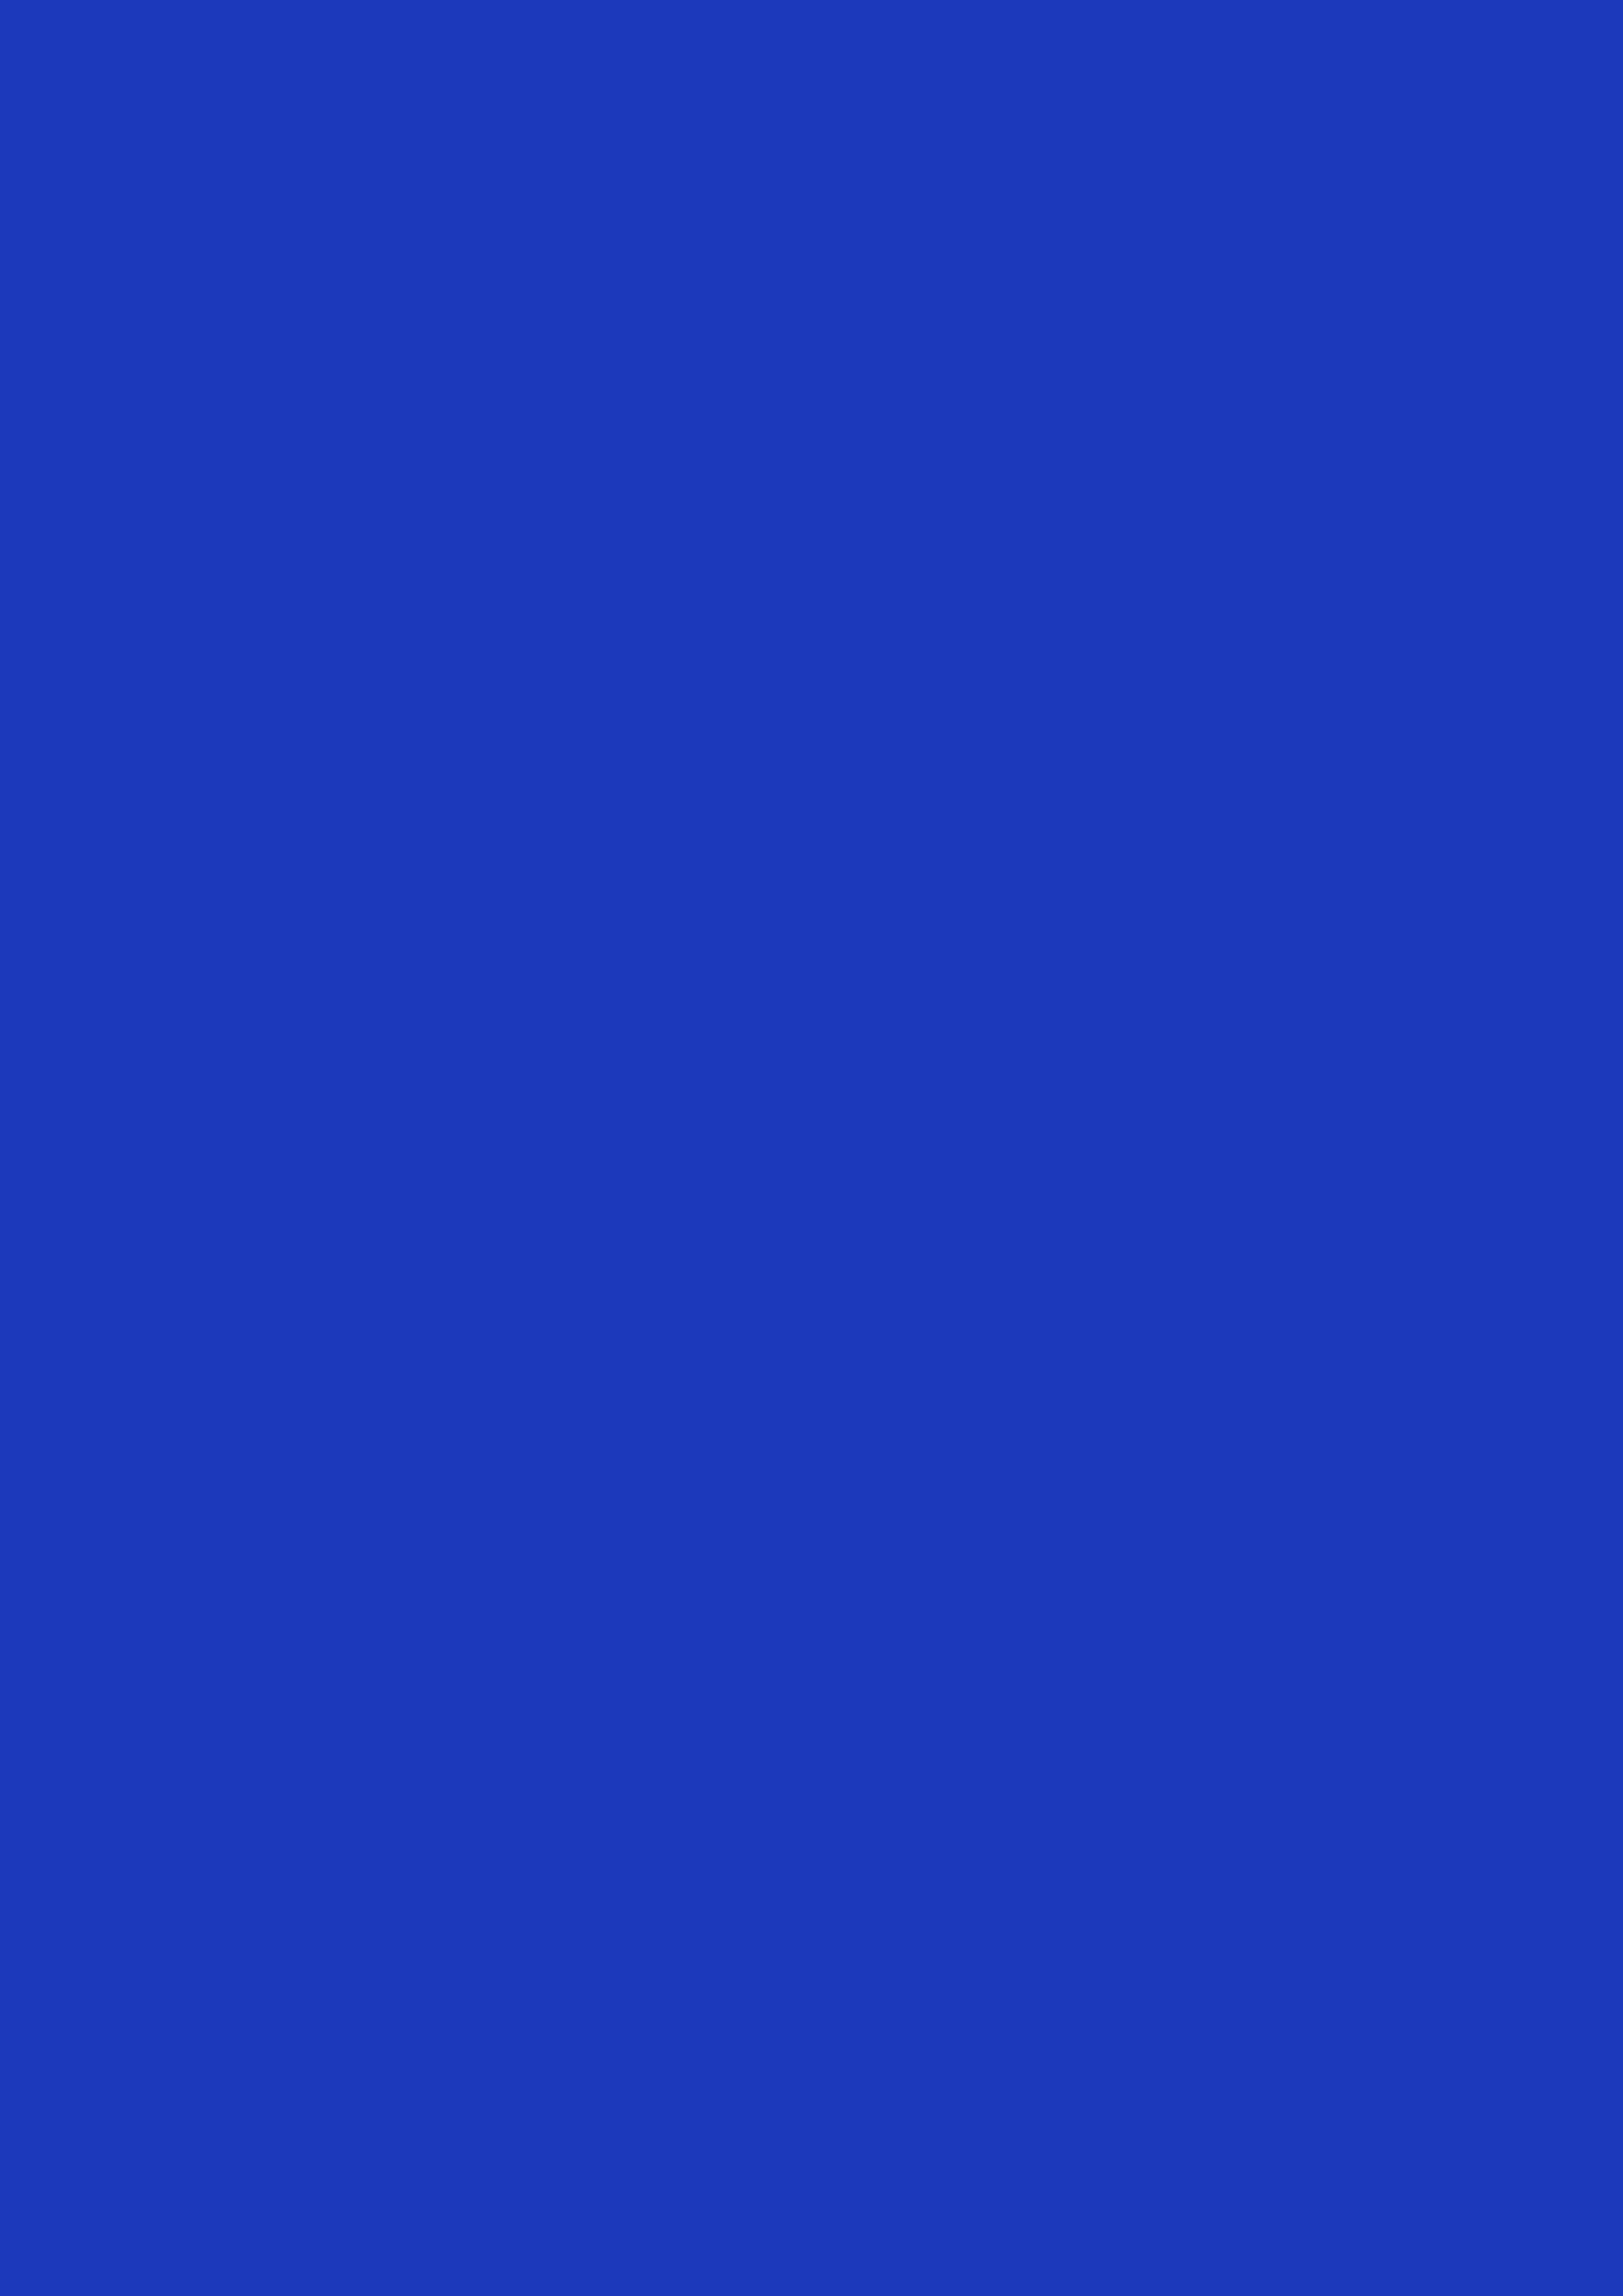 2480x3508 Persian Blue Solid Color Background